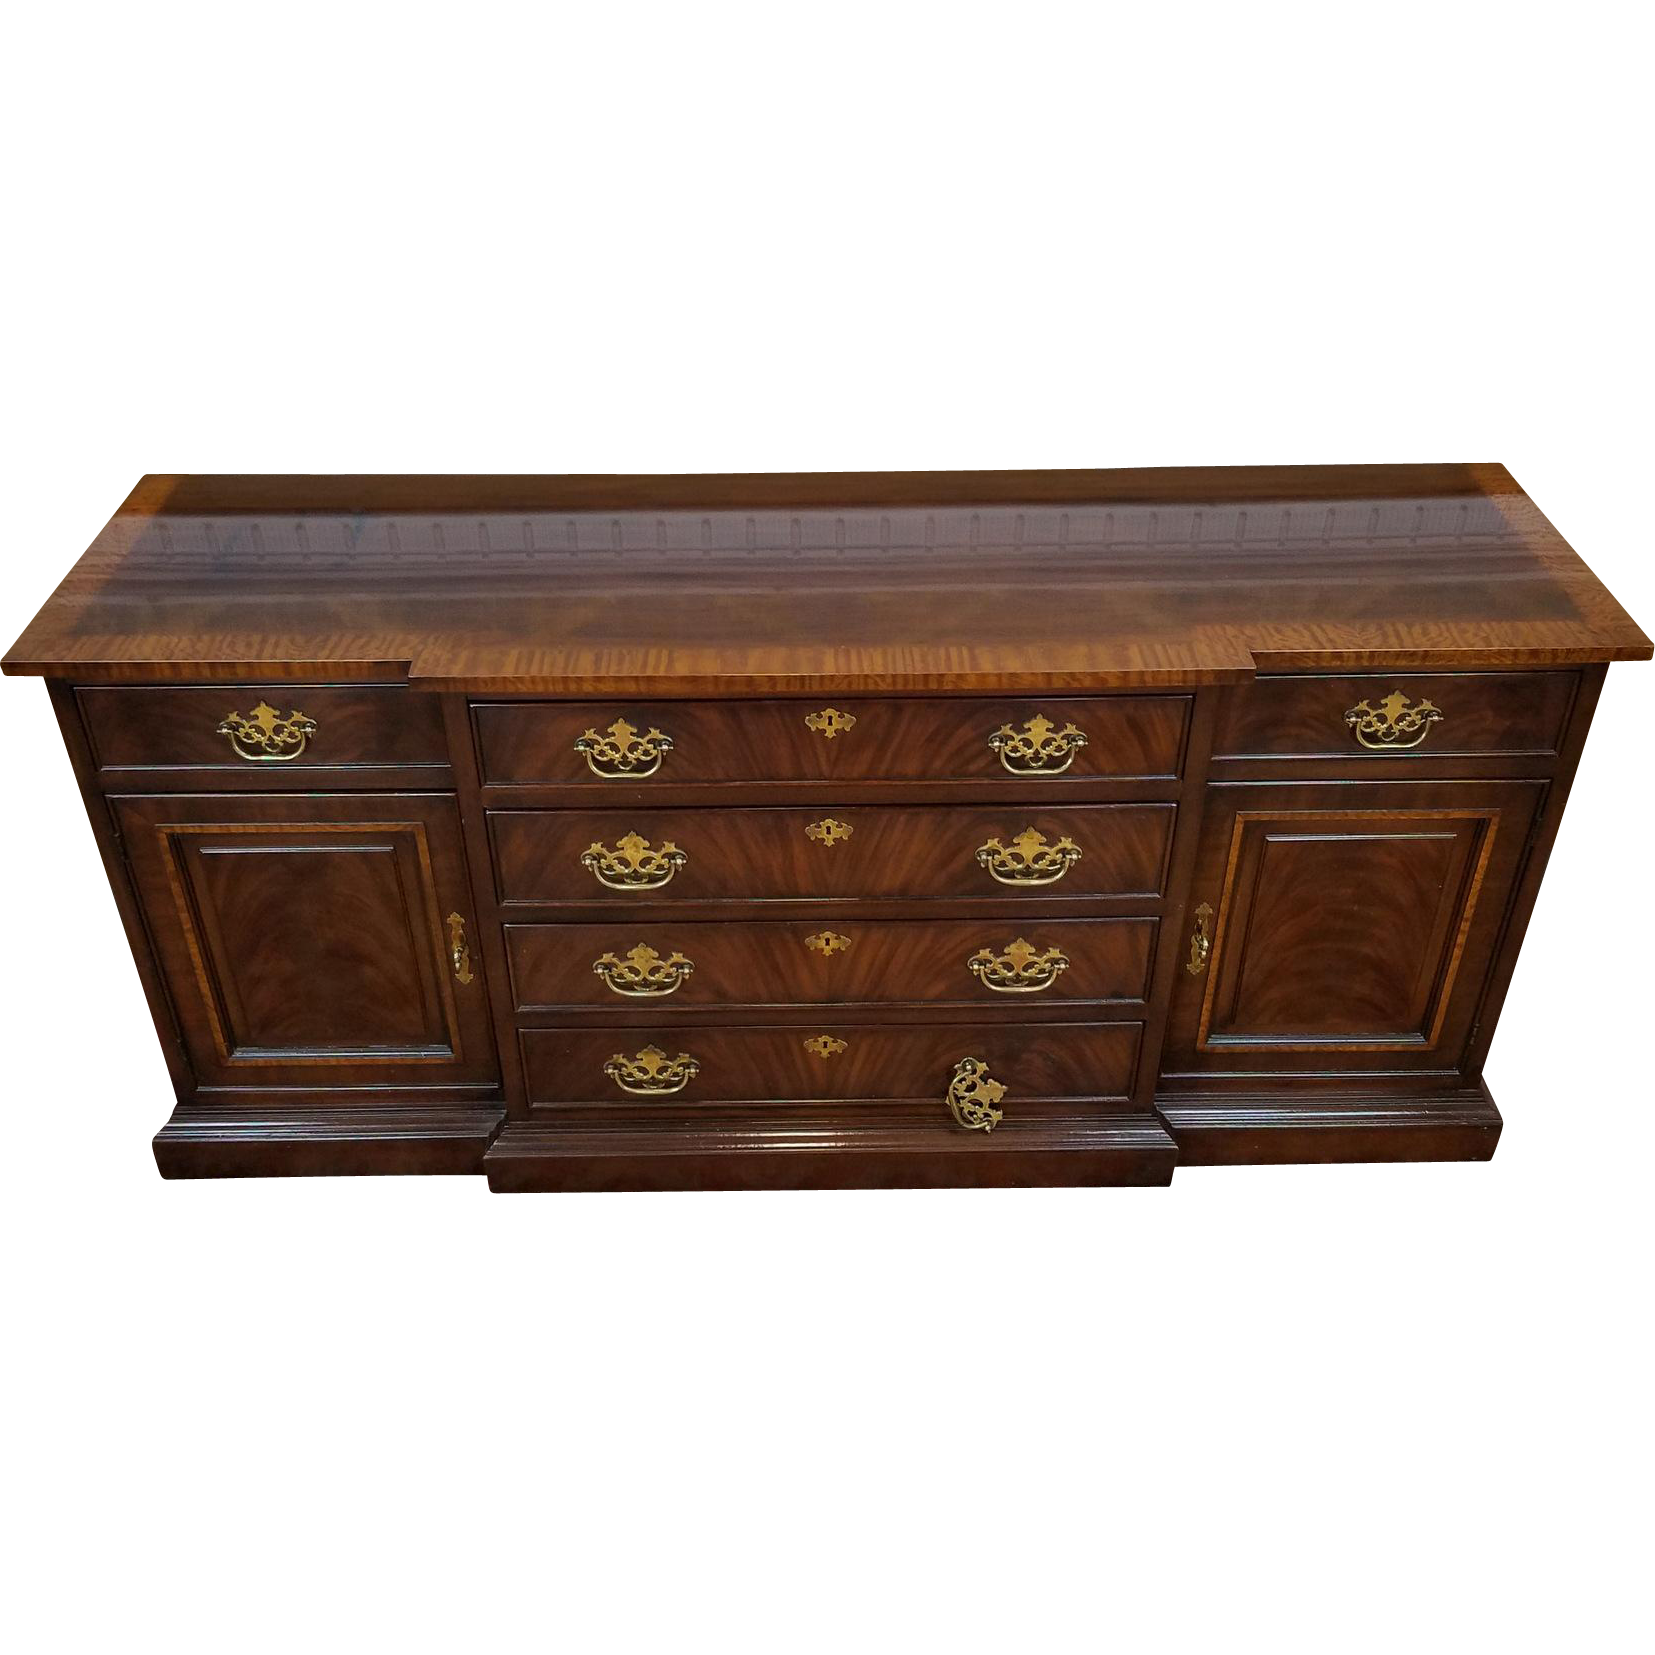 Drexel Heritage Banded Mahogany 18th Century Classics Dining Room Buffet Cabinet 128 134 6